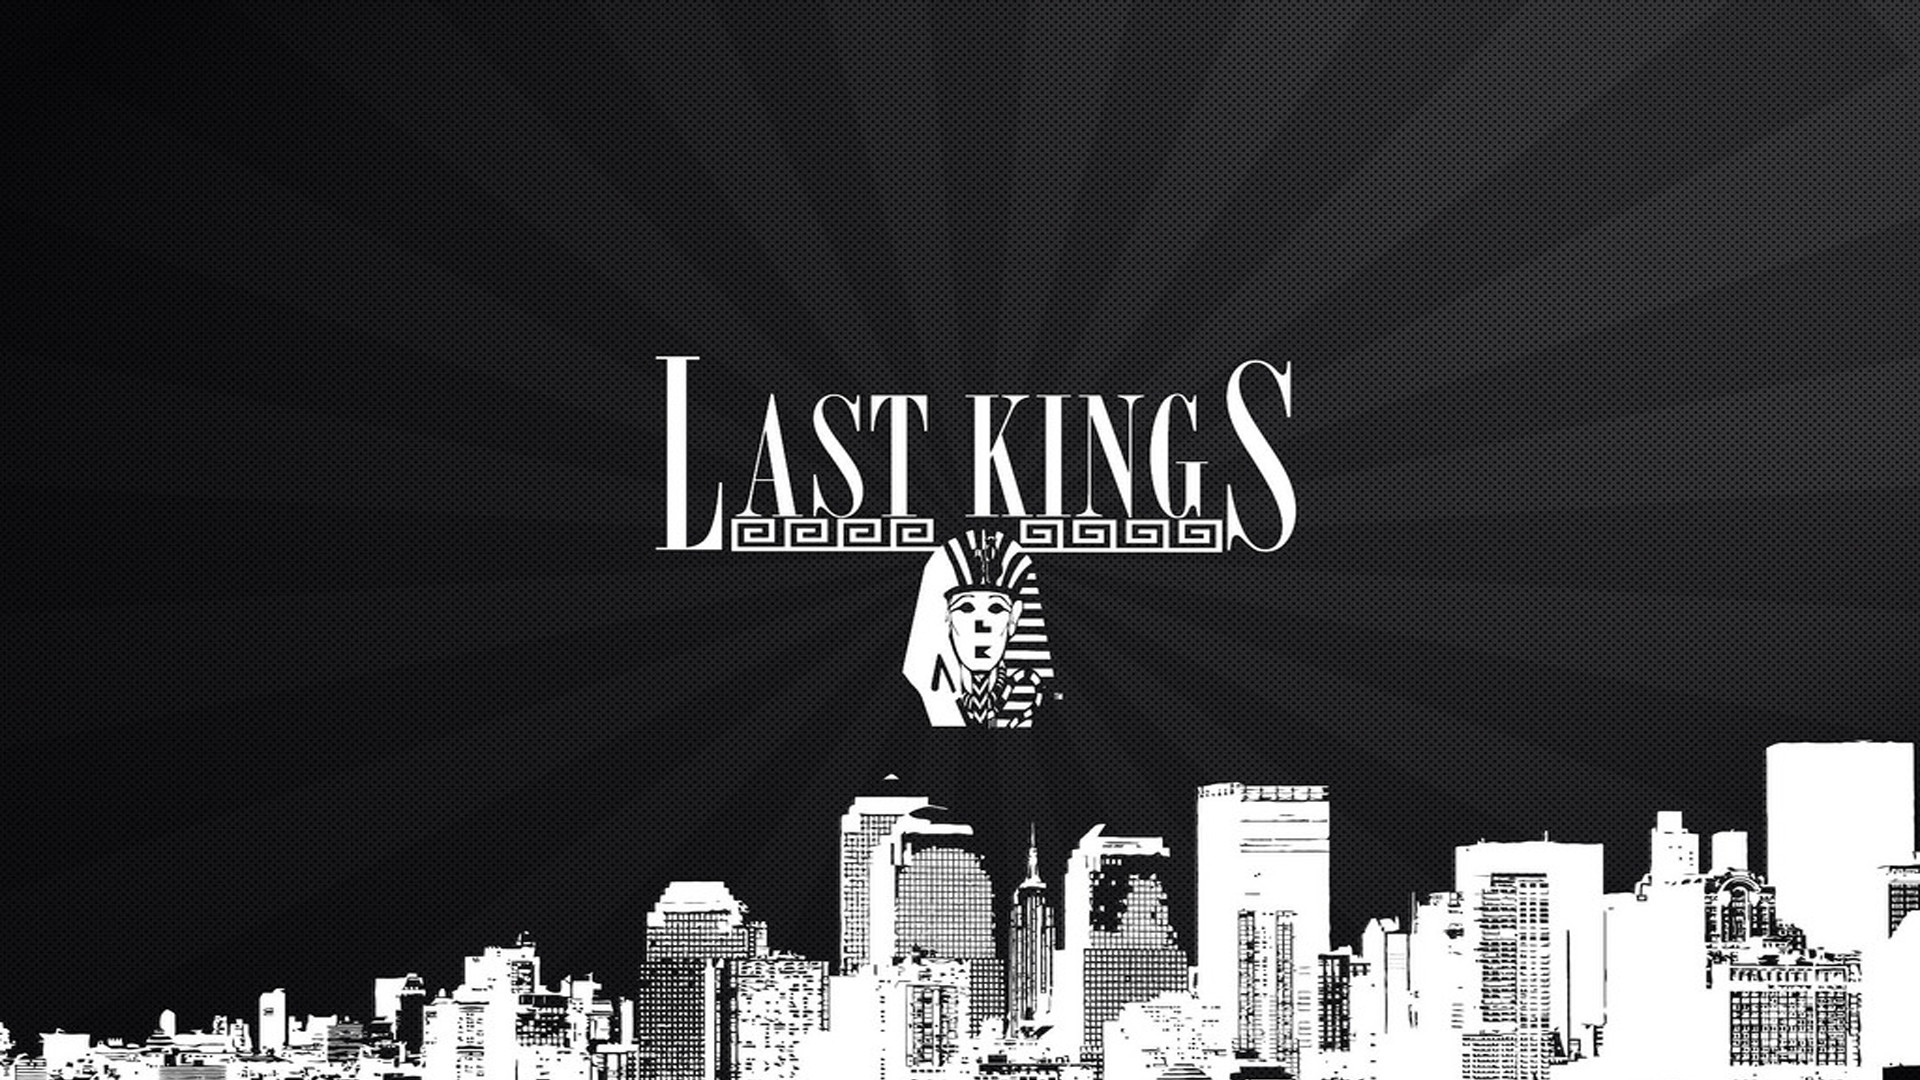 Last Kings Wallpaper with Logo on City